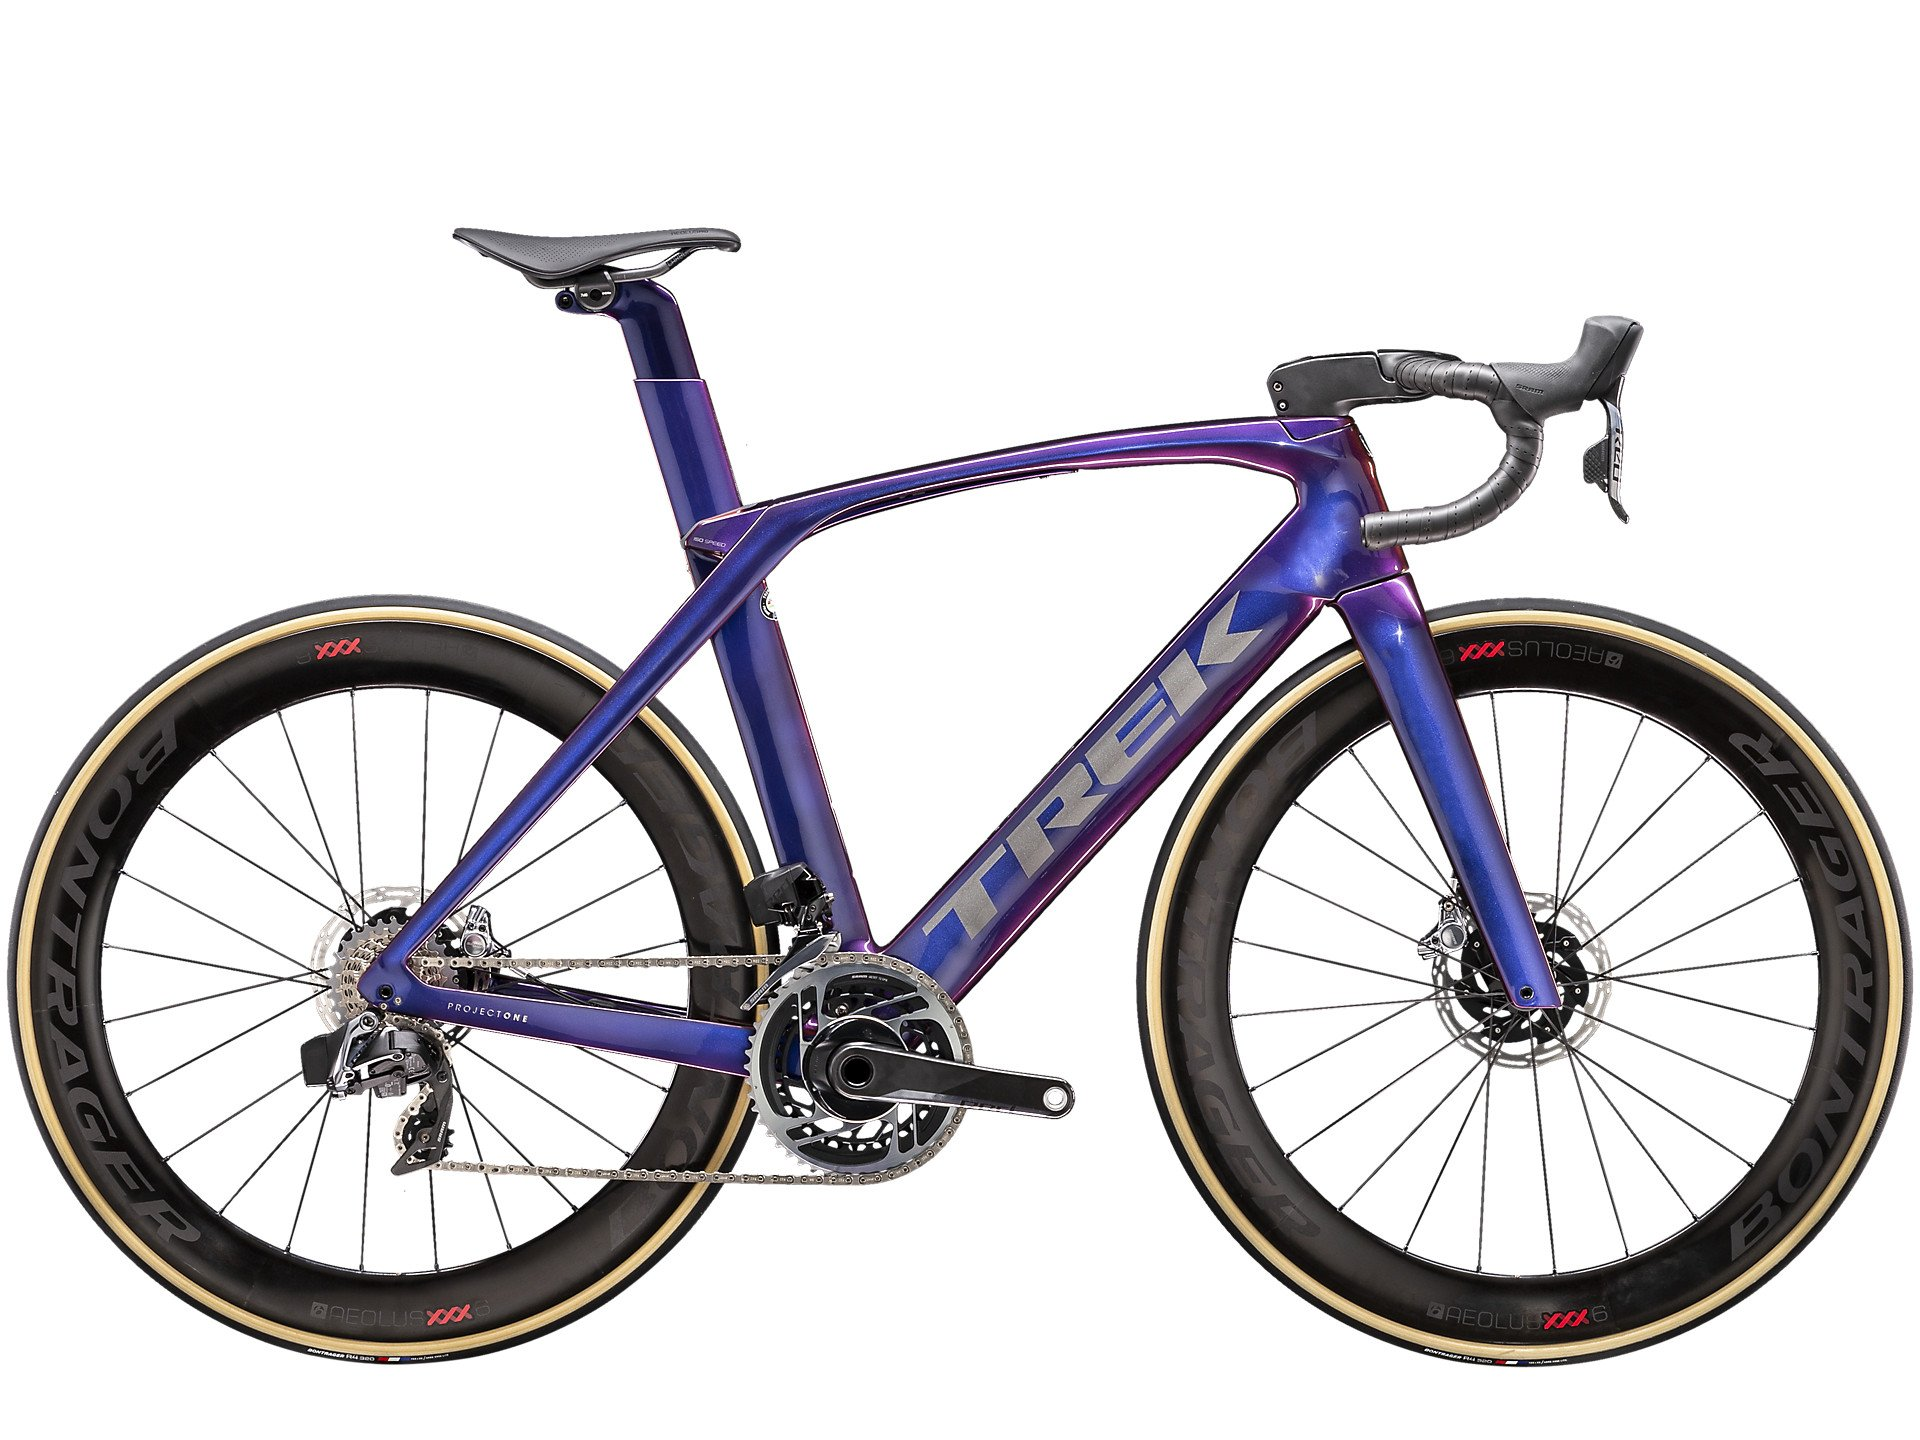 Madone Slr 9 Disc Etap Bicycles Outback